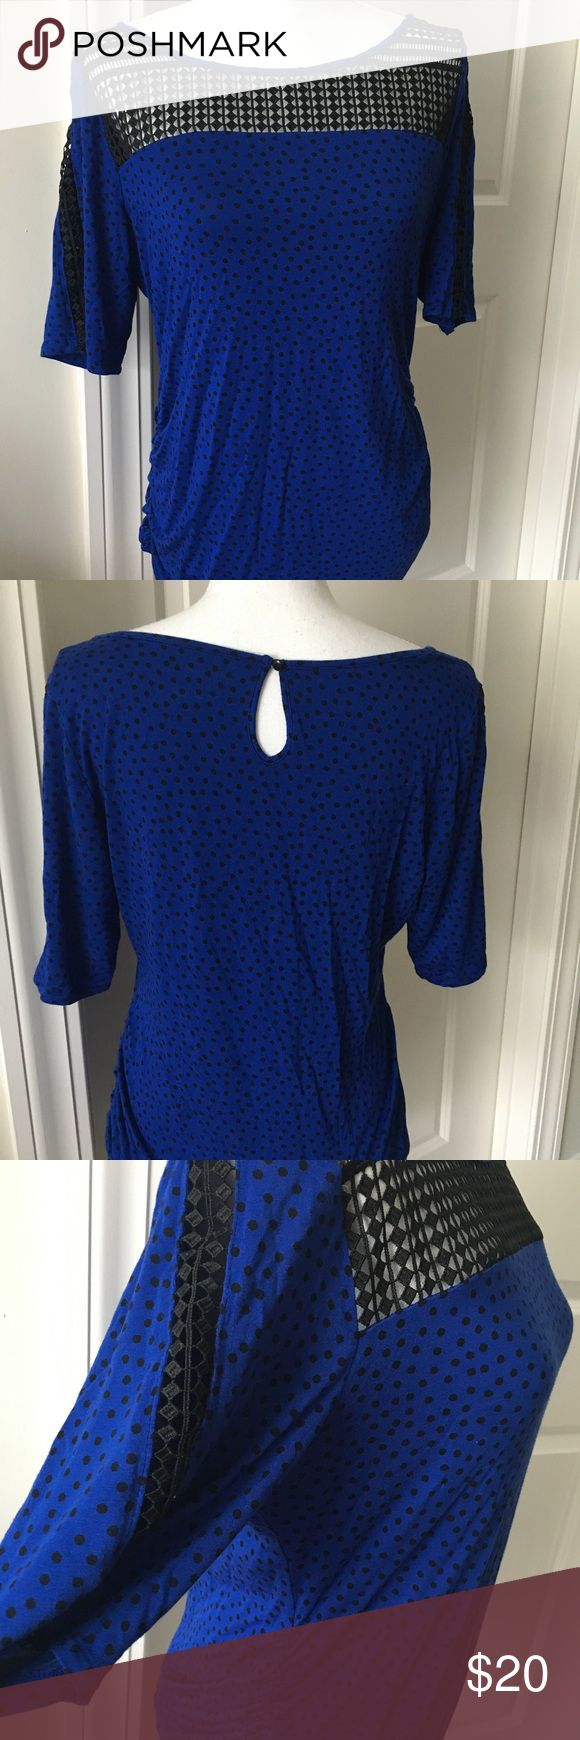 Motherhood Maternity short sleeve top Motherhood Maternity shirt sleeve blue top, Lacey design around the neck and arms, size large, only worn a few times Motherhood Maternity Tops Tees - Short Sleeve